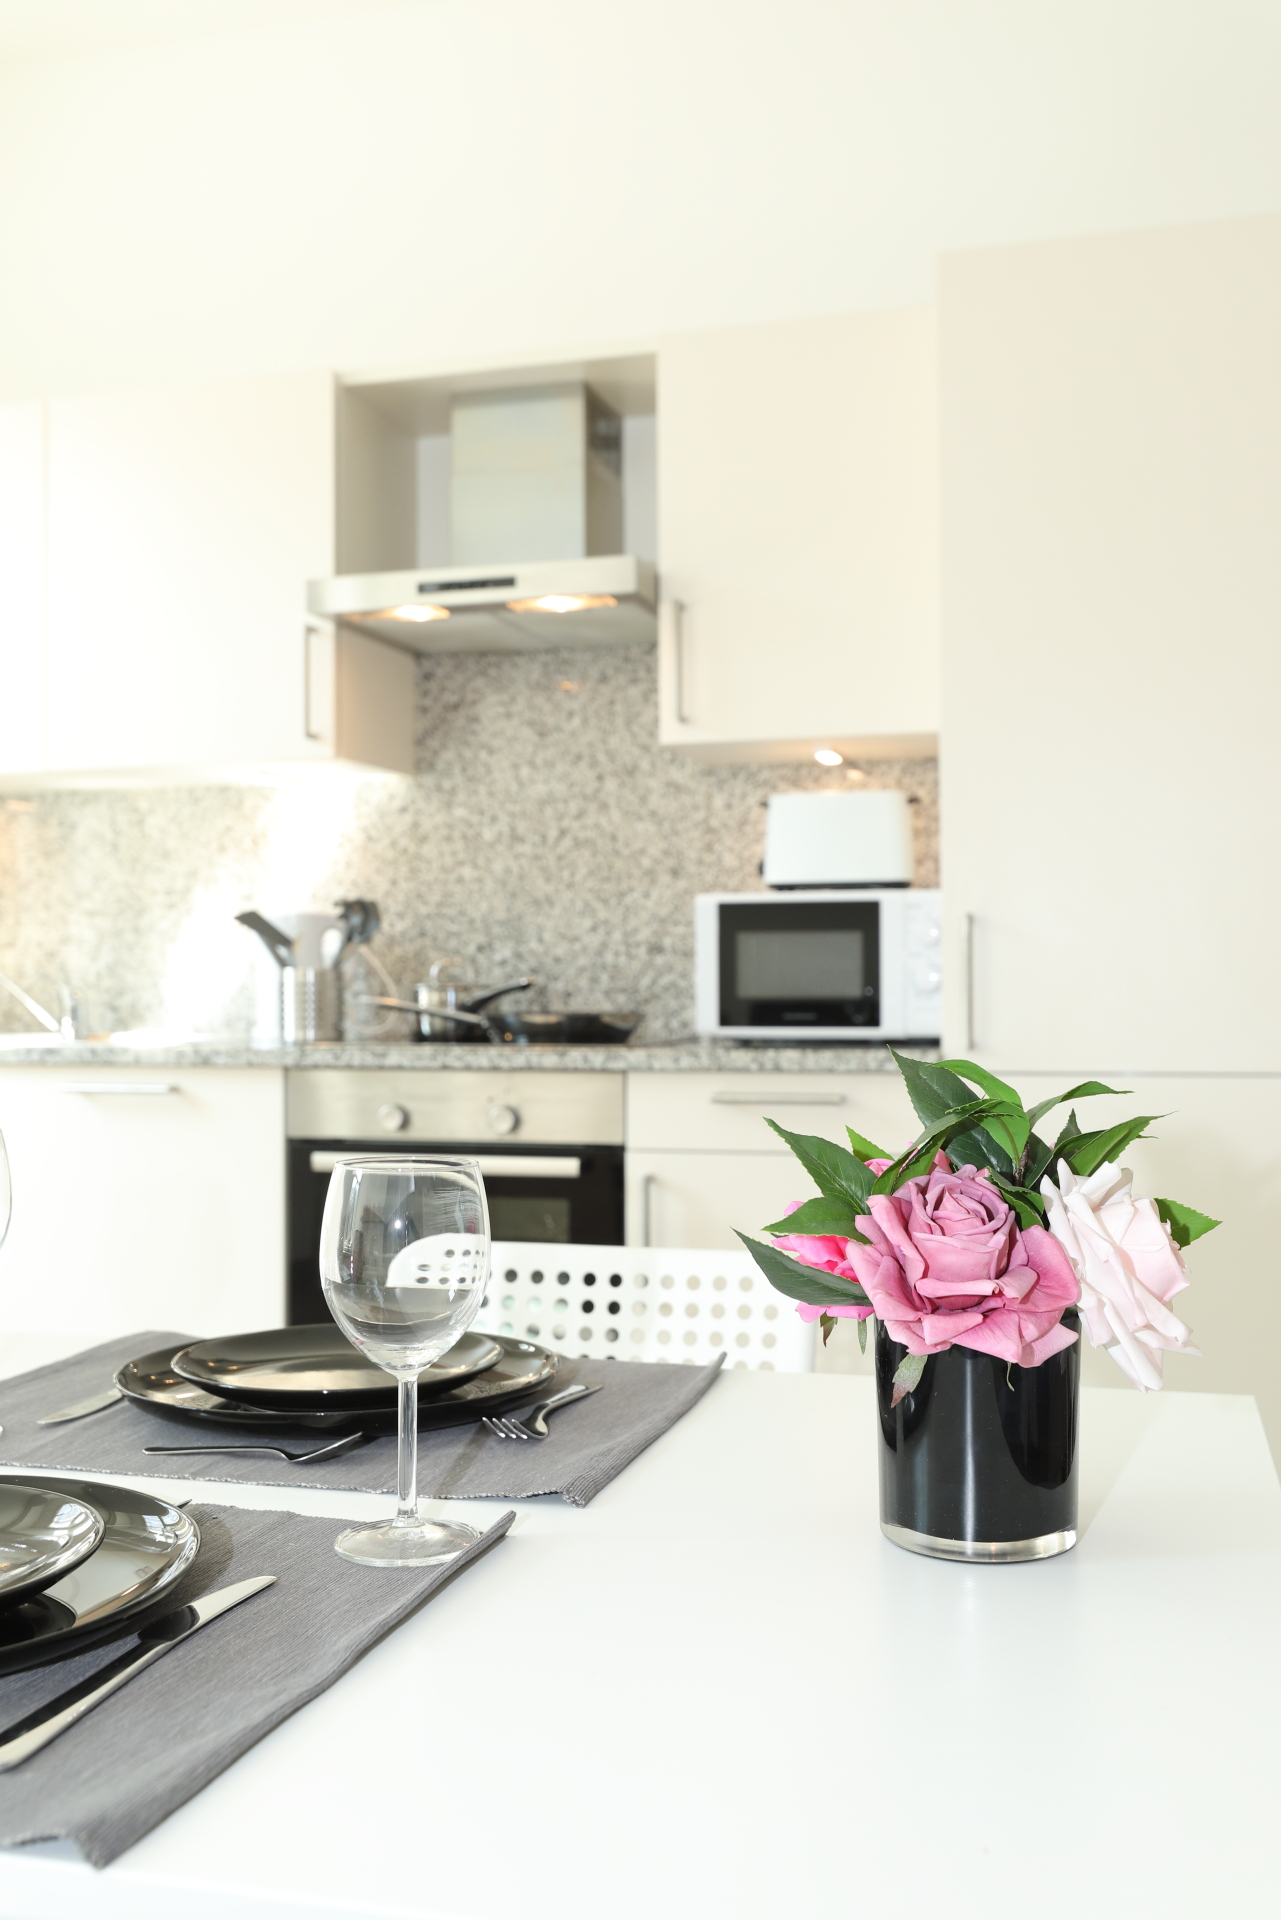 Cozy 1 bedroom apartment in Luxembourg-Pulvermuehle – VIL 12